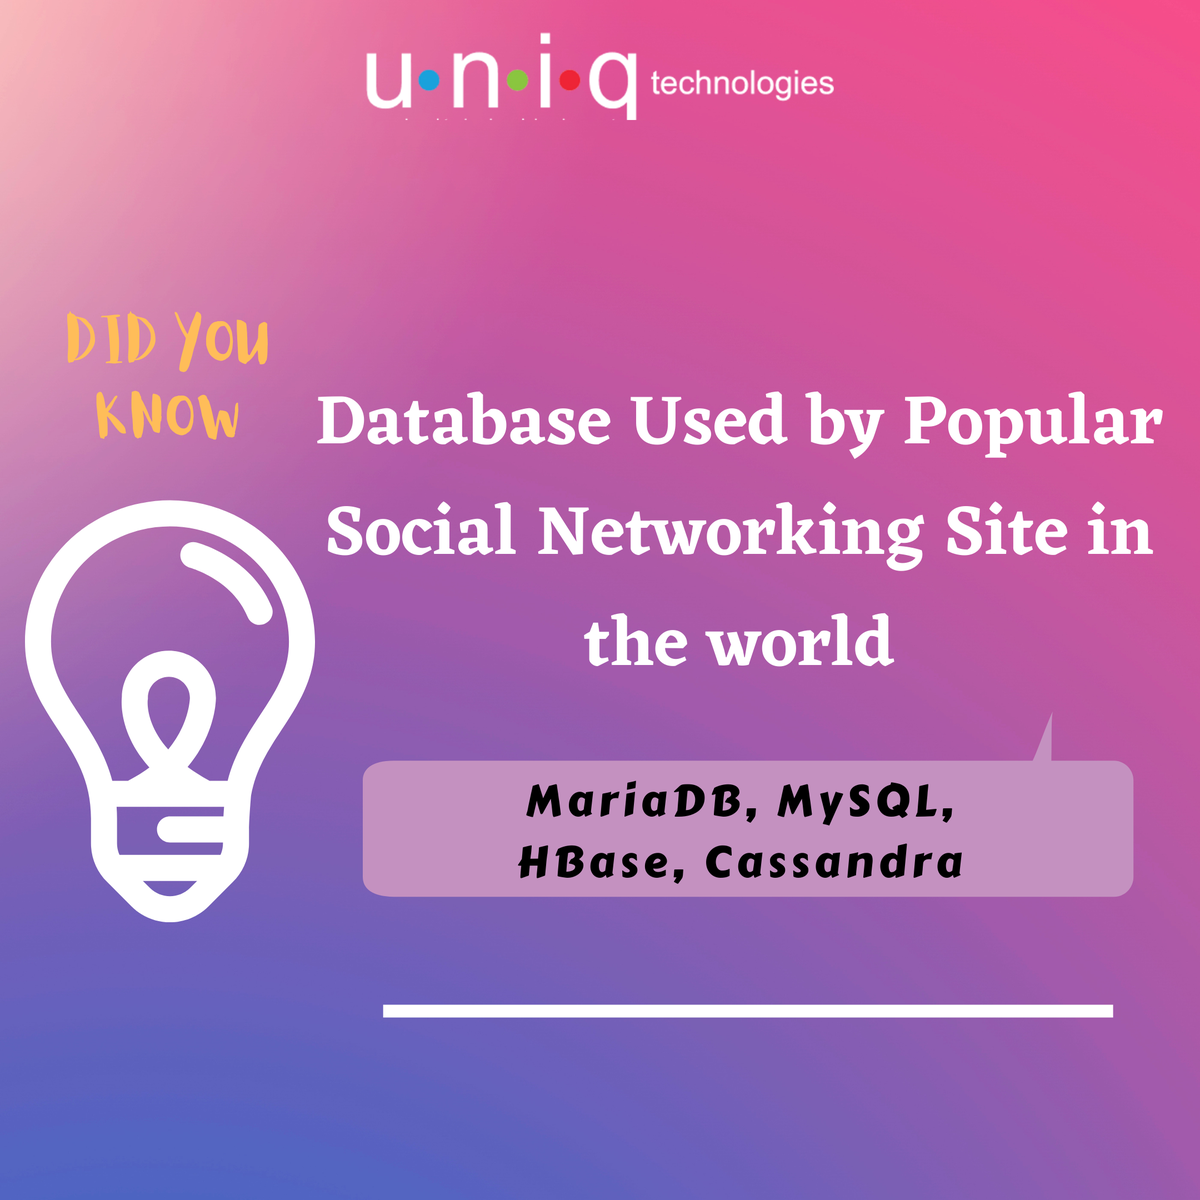 Database Used by Popular Social Networking Site (Facebook) in the world  #techquestion #social #network #billiondollar #revenue #question #updates #studentupdate #Learning #uniqtechs #training #didyouknow #reports #diduknow #learndaily #unbeatable #knowledgegrowth https://t.co/SCQNx2caHg